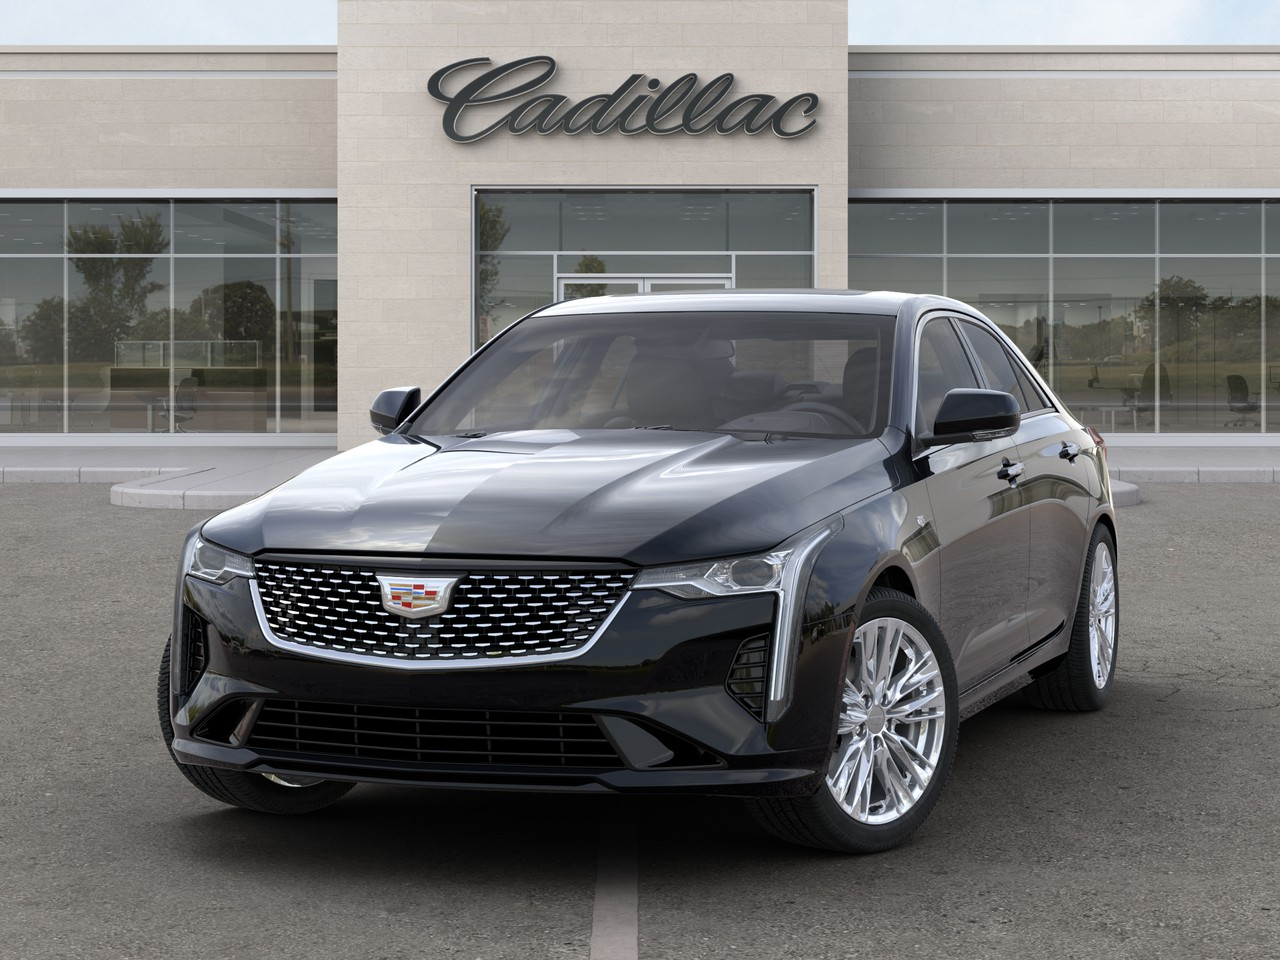 2020 CADILLAC CT4 Premium Luxury Car